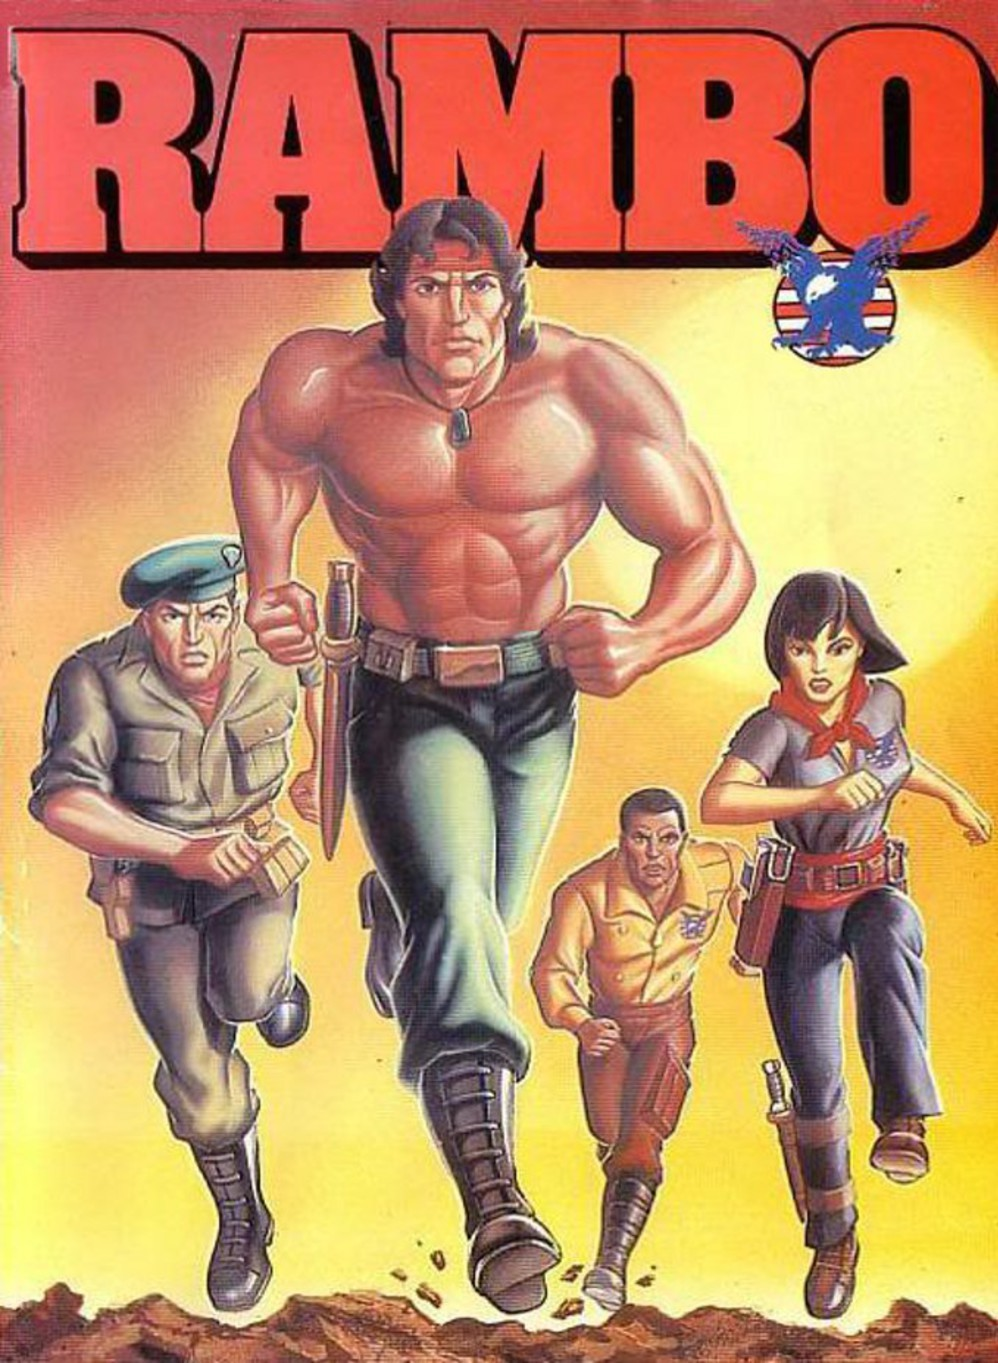 http://static.tvtropes.org/pmwiki/pub/images/rambo_the_force_of_freedom.jpg